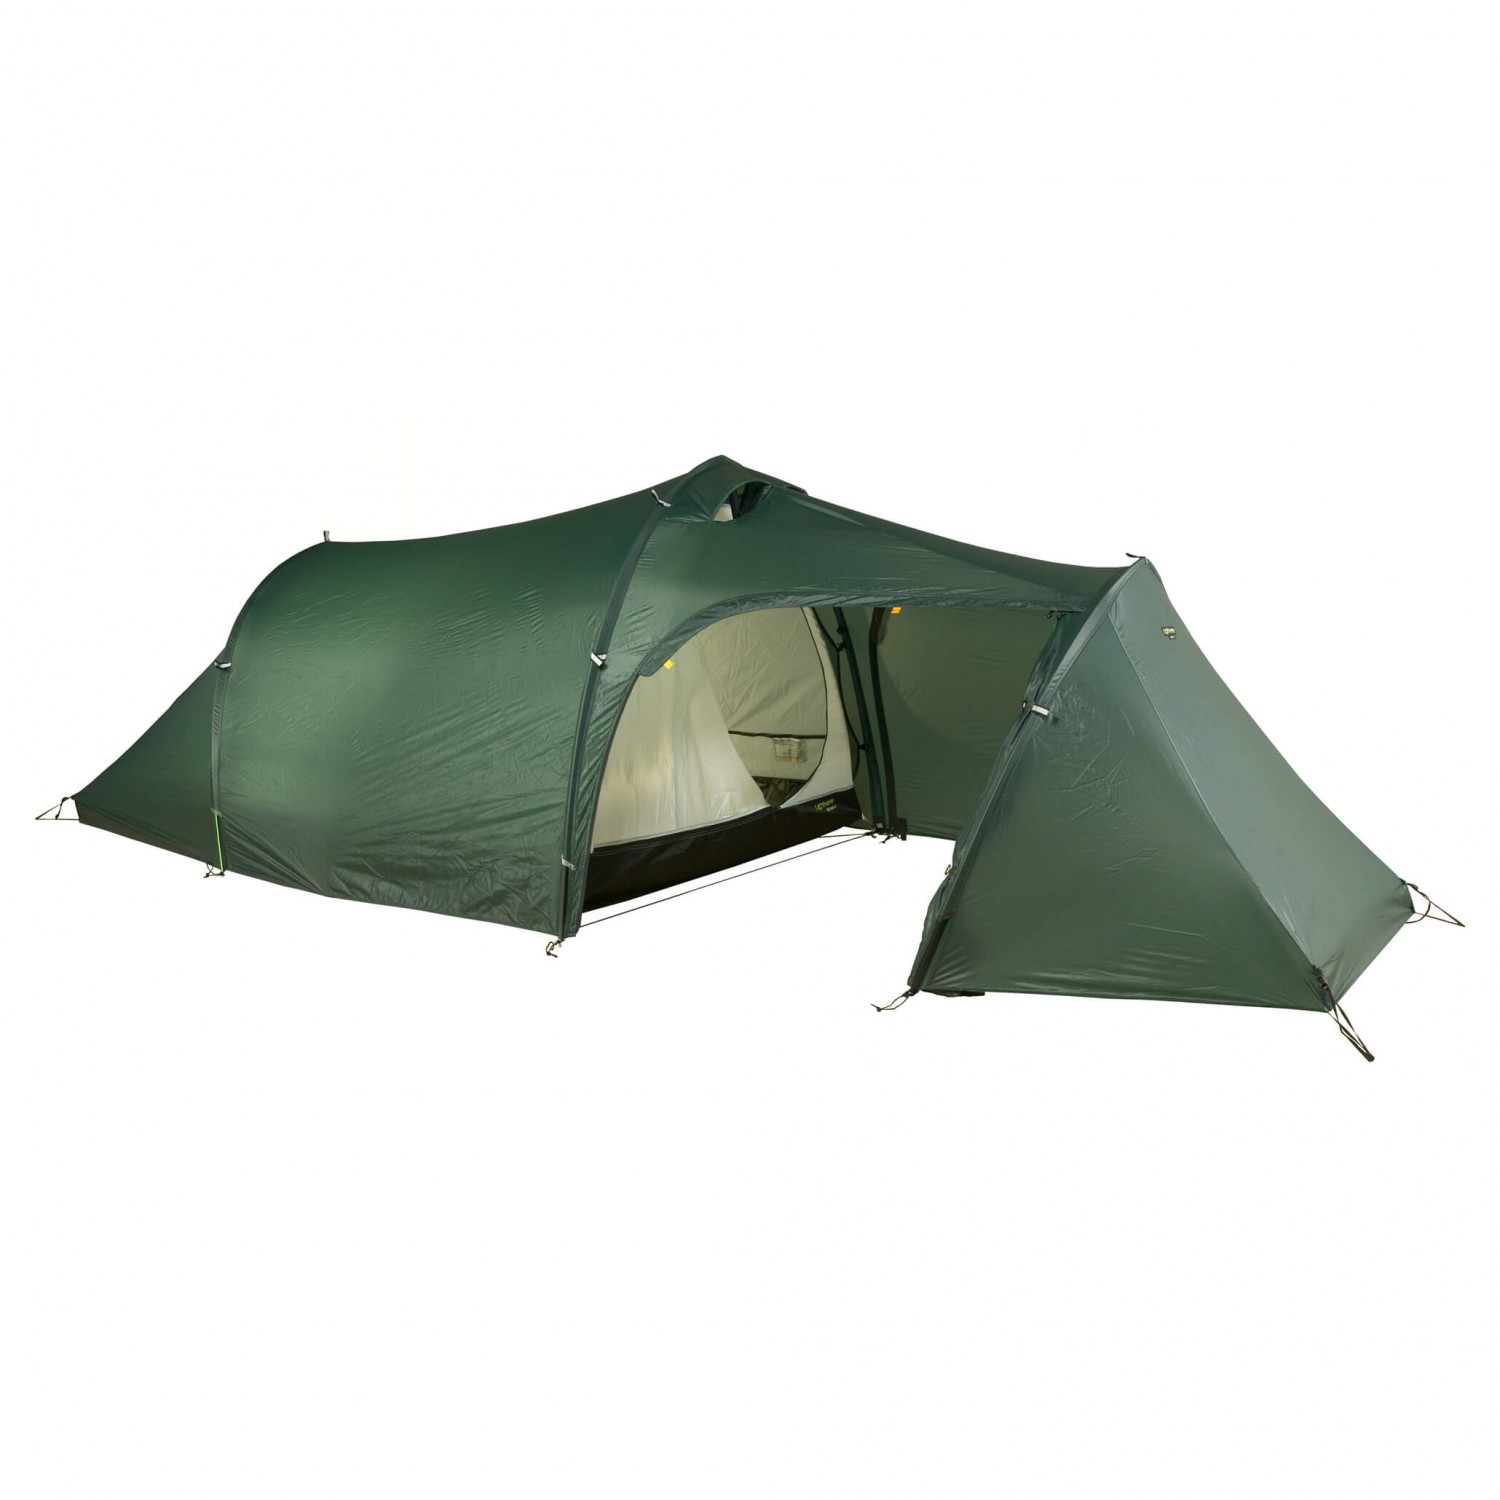 Lightwave - T20 Hyper XT - 2-person tent ...  sc 1 st  Alpinetrek & Lightwave T20 Hyper XT - 2-Person Tent | Buy online | Alpinetrek.co.uk